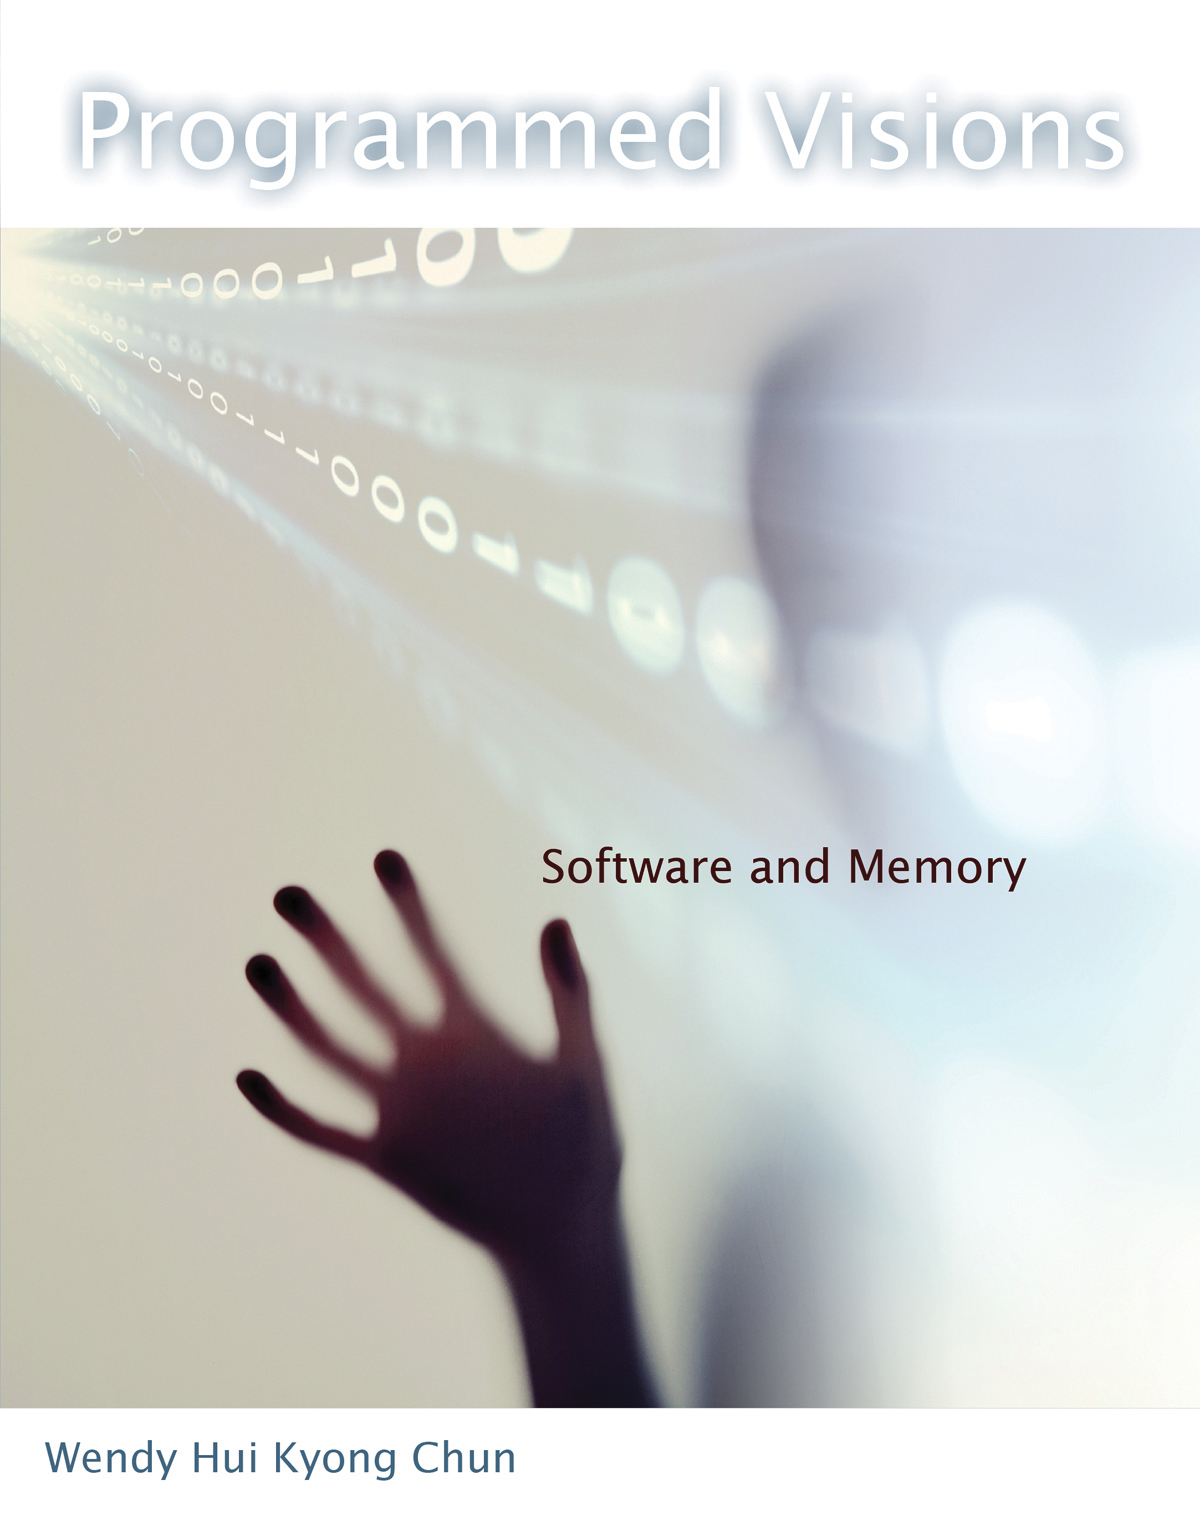 Programmed Visions: Software and Memory (MIT Press, 2013)